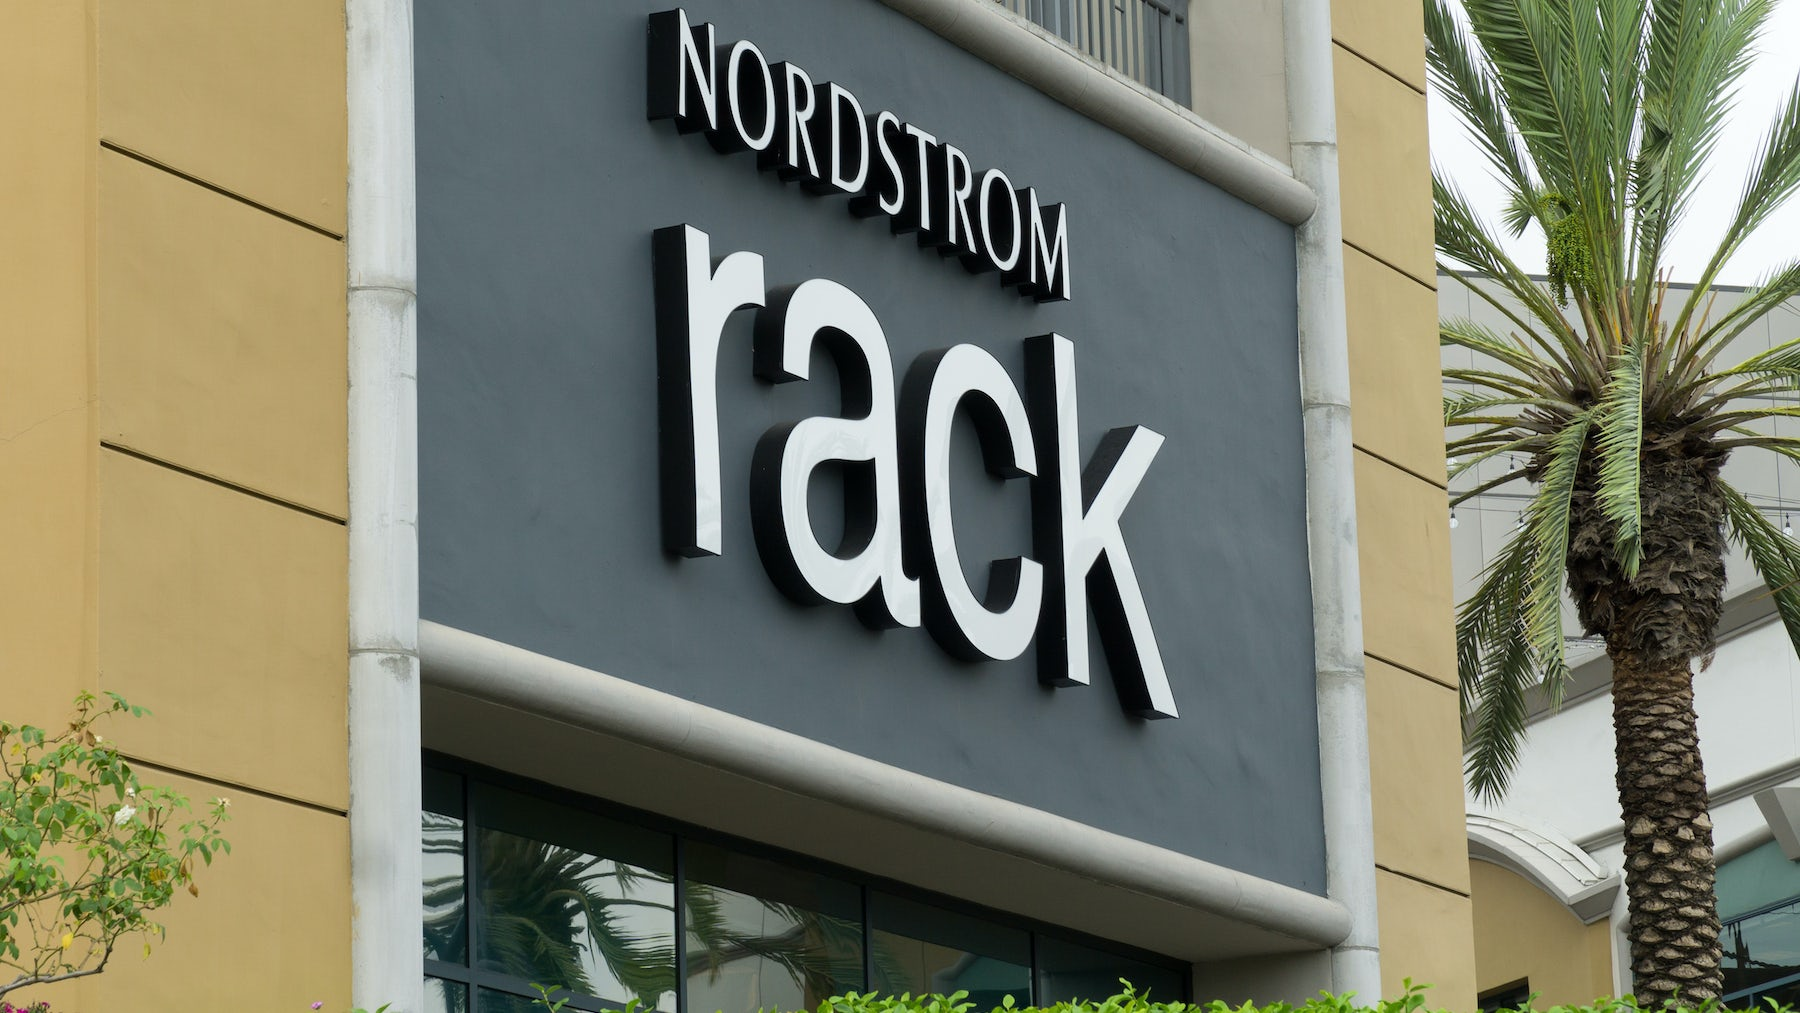 Is Nordstrom's Off-Price Strategy Hurting Its Mainline Business?